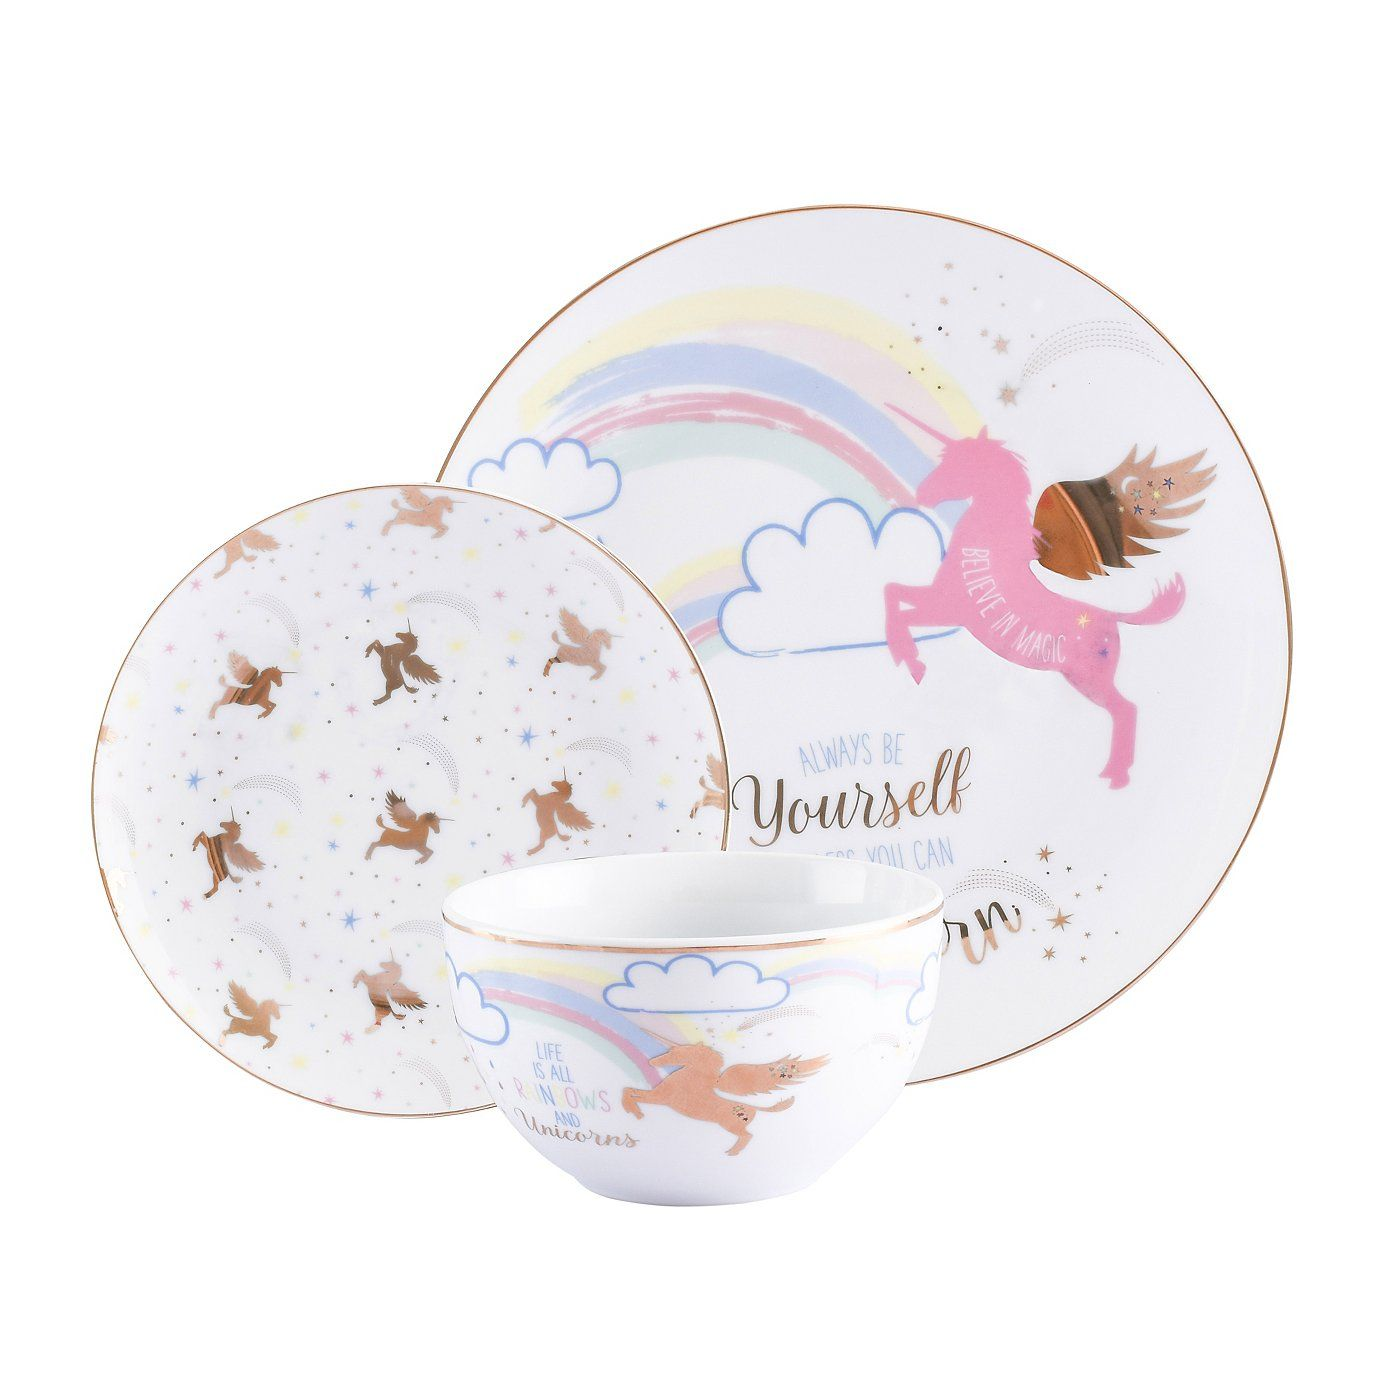 Unicorn Tableware Range Read Reviews And Buy Online At George At Asda Shop From Our Latest Range In Home Garden Add A Magical Touch To Your Dining Table